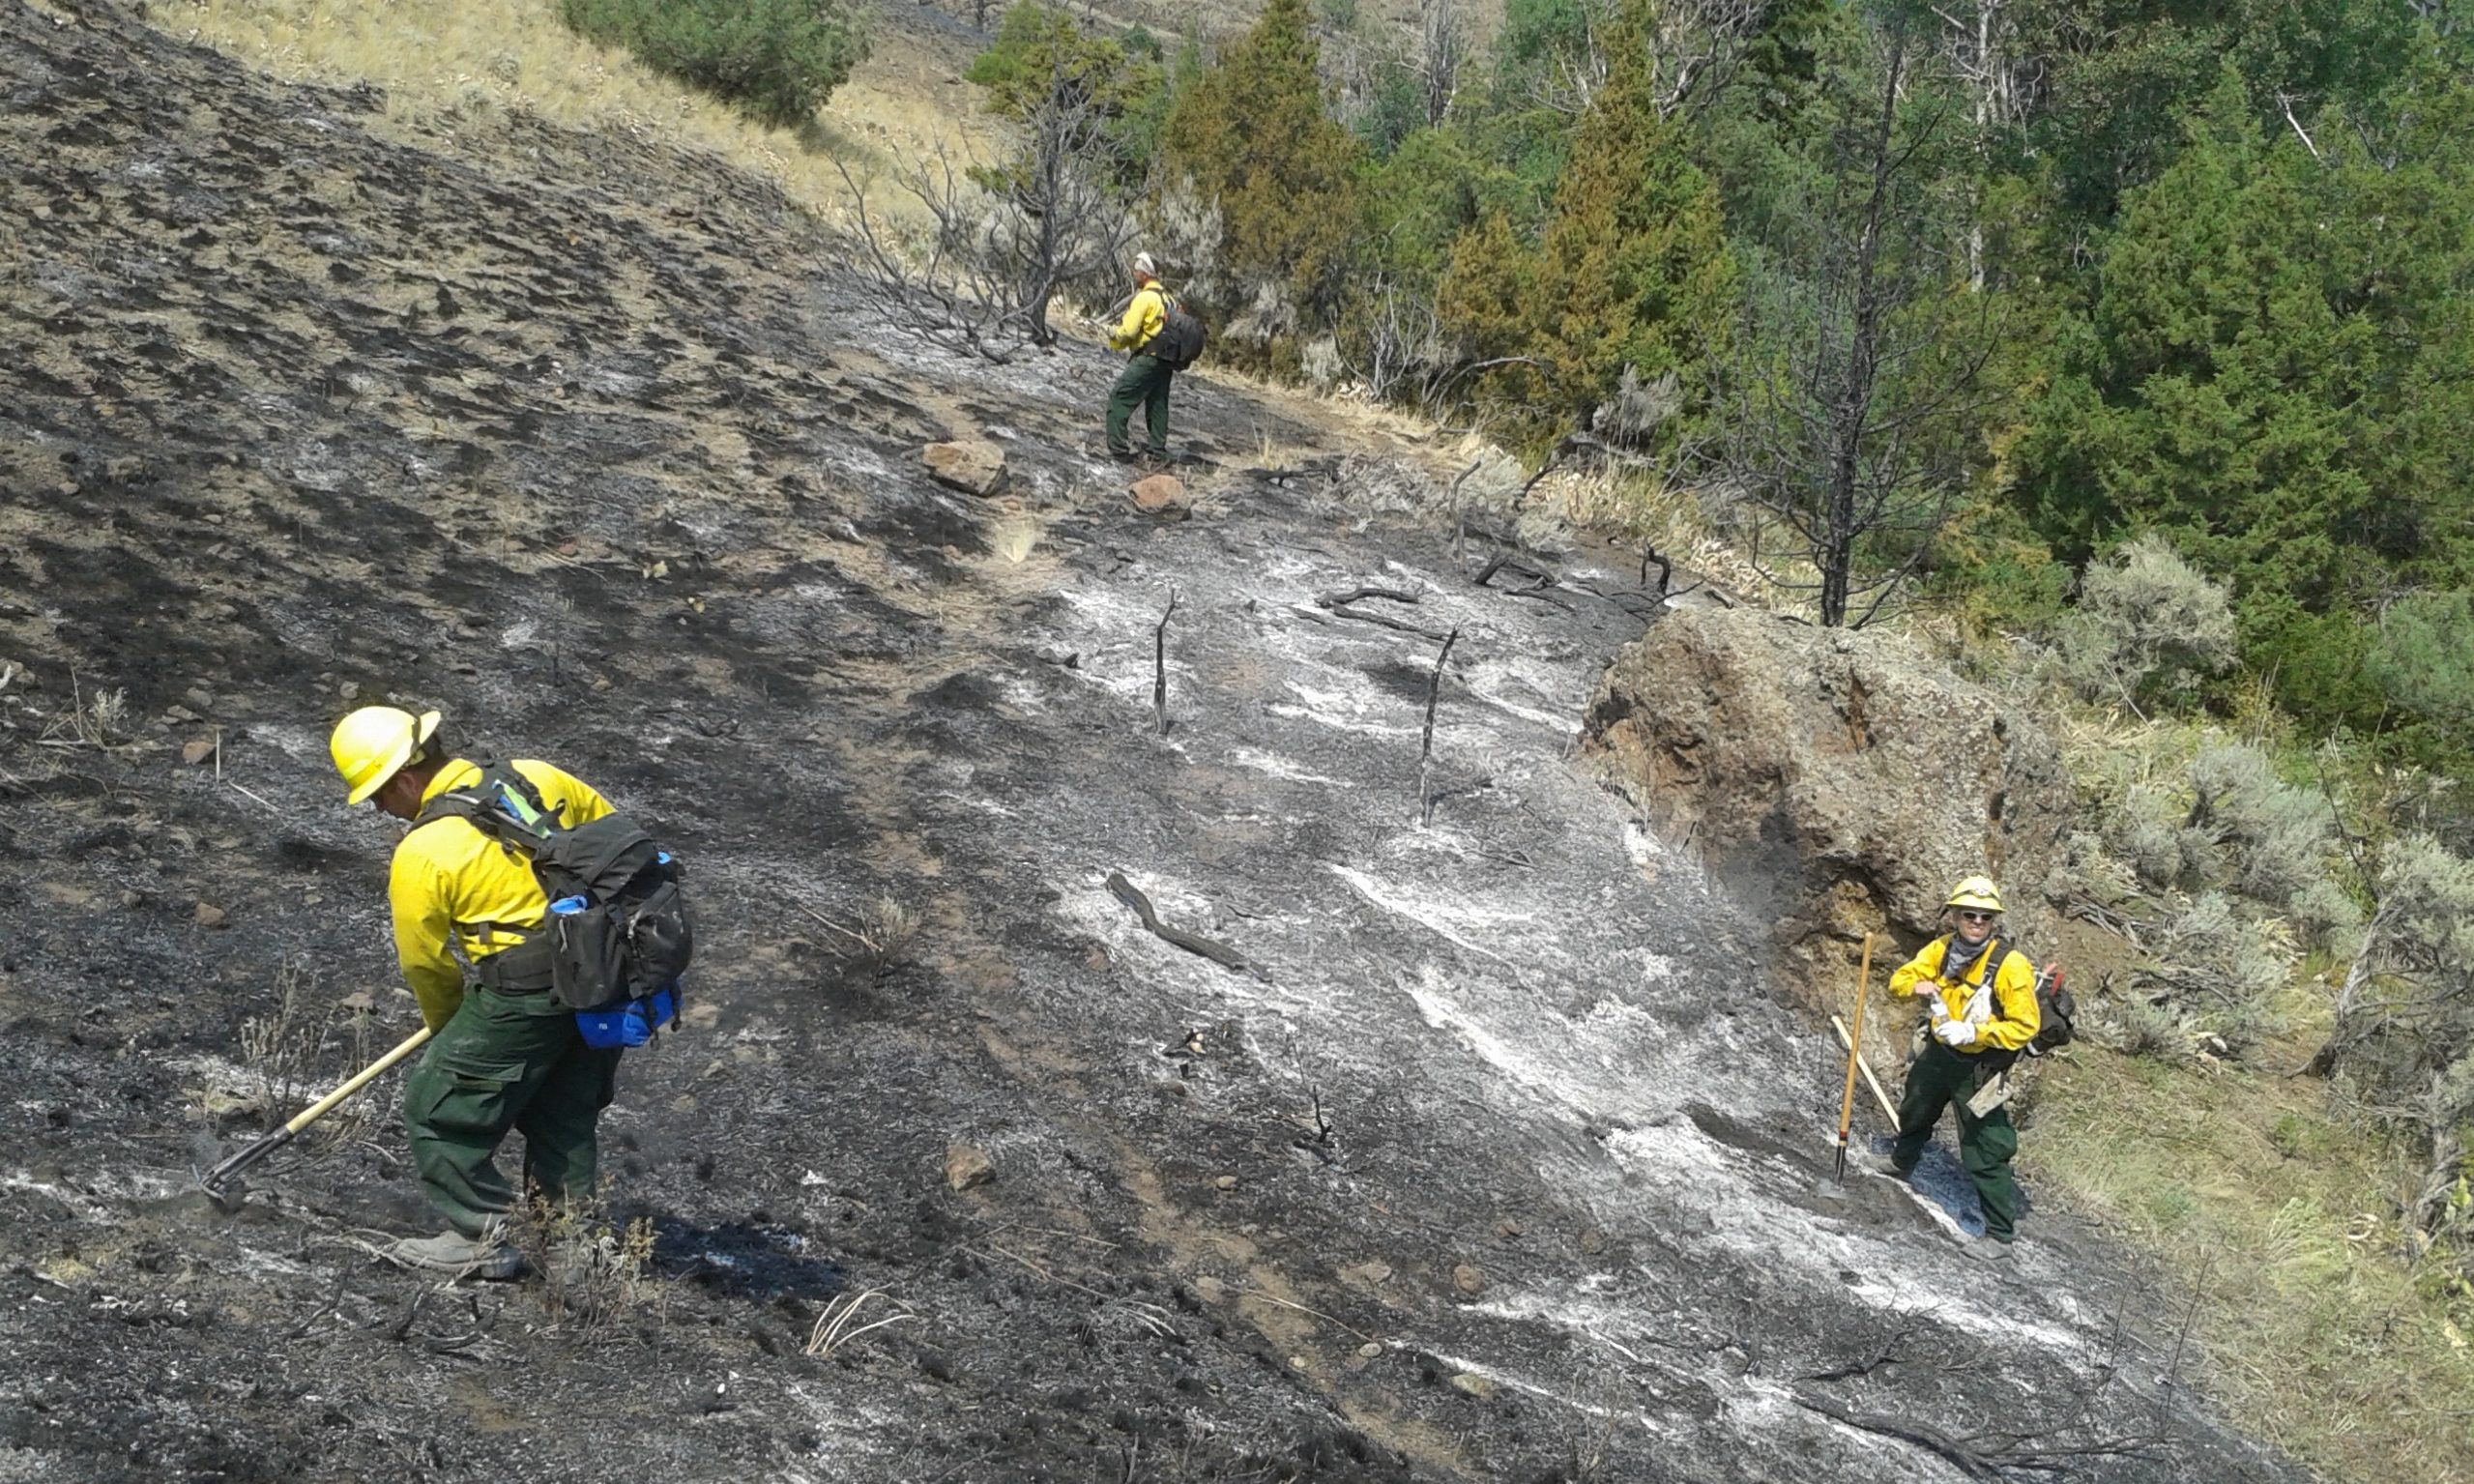 Wildland firefighters from all over Pennsylvania search for hot spots in a burned-over area of the Whit Fire near Cody, Wyo. Two crews from Pennsylvania were sent to assist with wildfires in Wyoming on July 28. The crews returned home on Aug. 14. (Photo by Kimberly Finnigan)